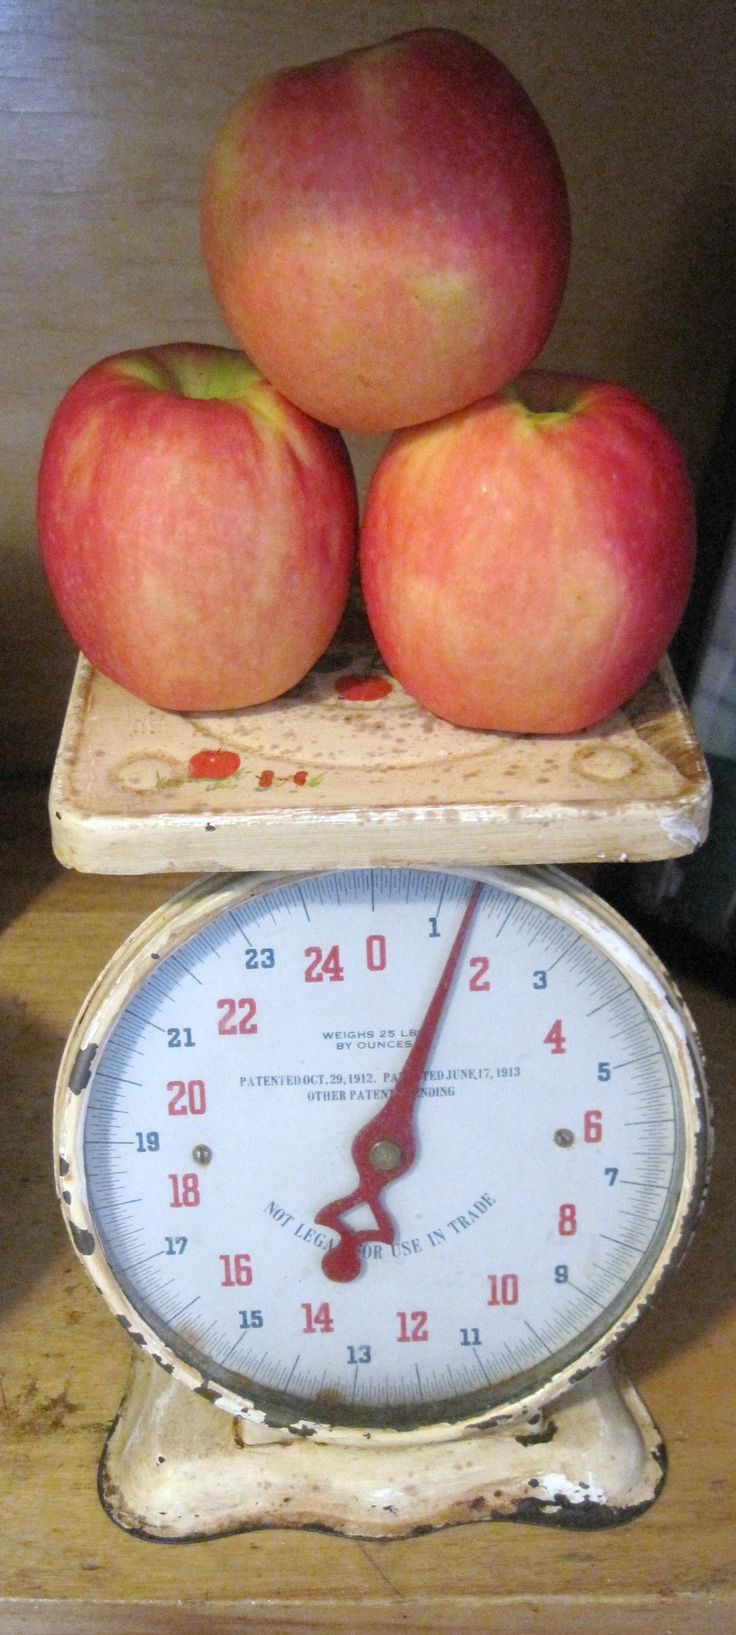 Scale ItKitchens Scales, Apples Orchards, Vintage Scales, Kitchens Collection, Antiques Scales, Chippy Vintage, Common Kitchens, Kitchens Products, Food Scales